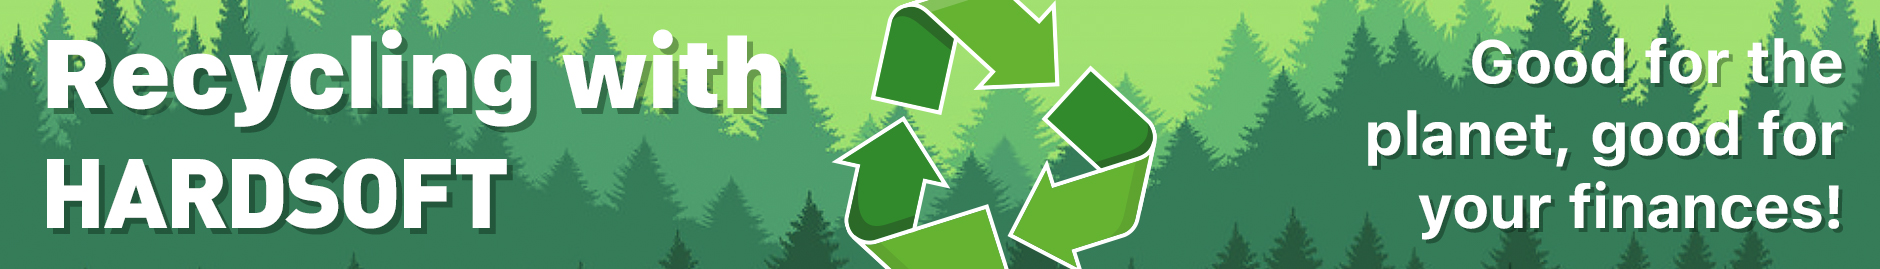 Recycling with HardSoft - Good for the planet, good for your finances!